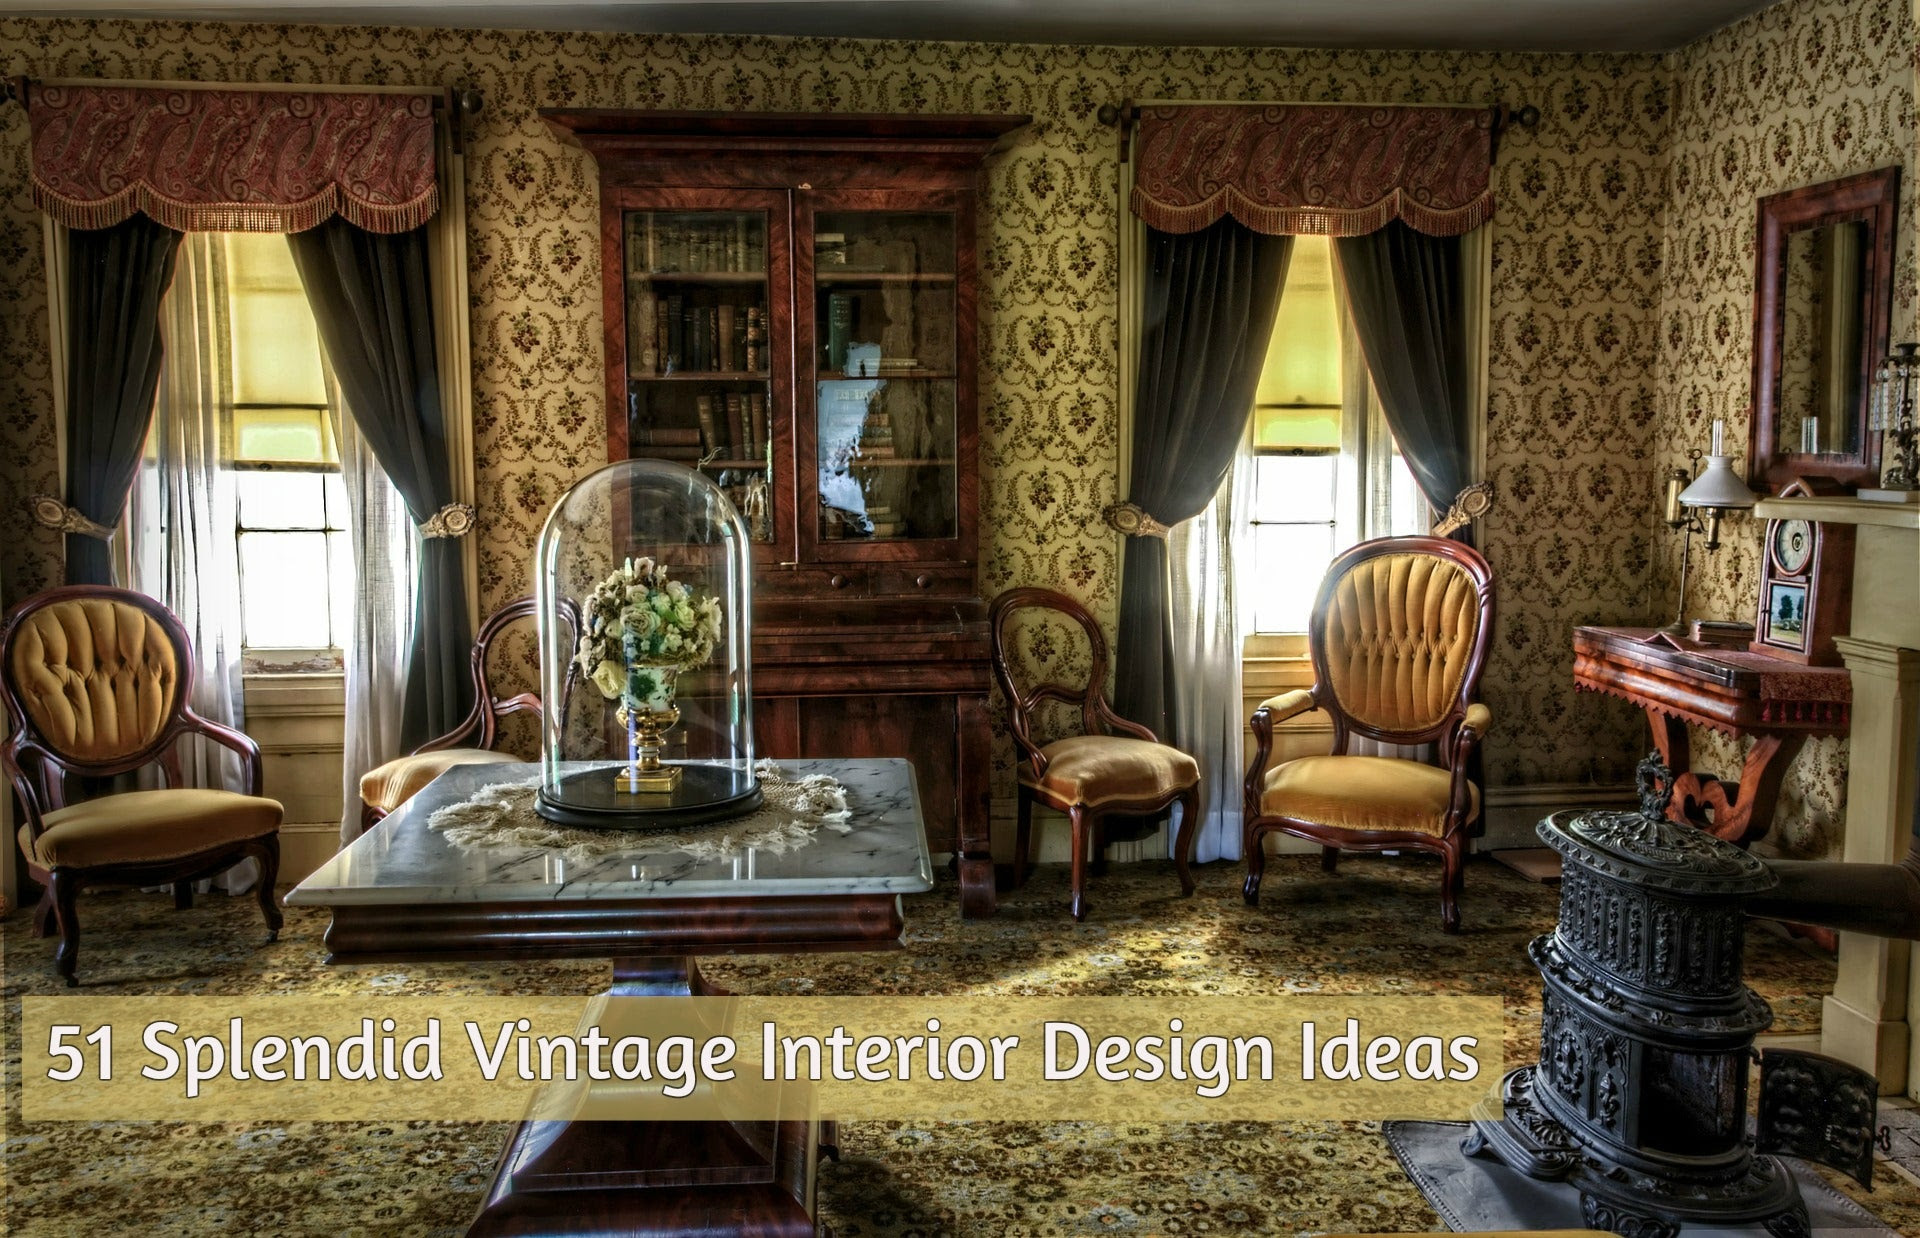 51 Worthy Vintage Interior Design Ideas To Convert Your Home The Farthing